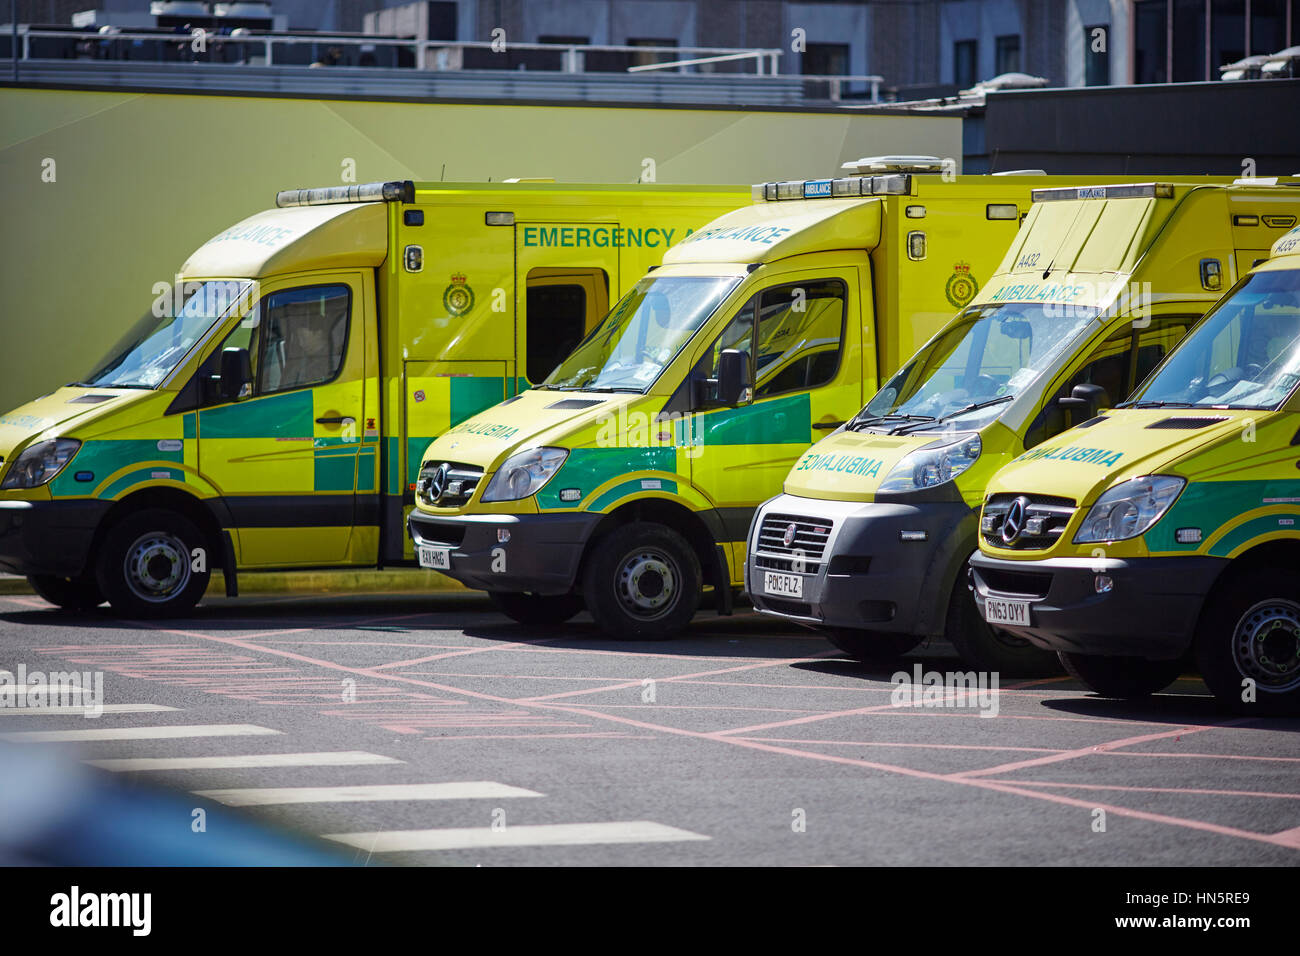 liveried ambulances parked on duty in designated bays at Manchester Royal Infirmary  accident and emergency department - Stock Image